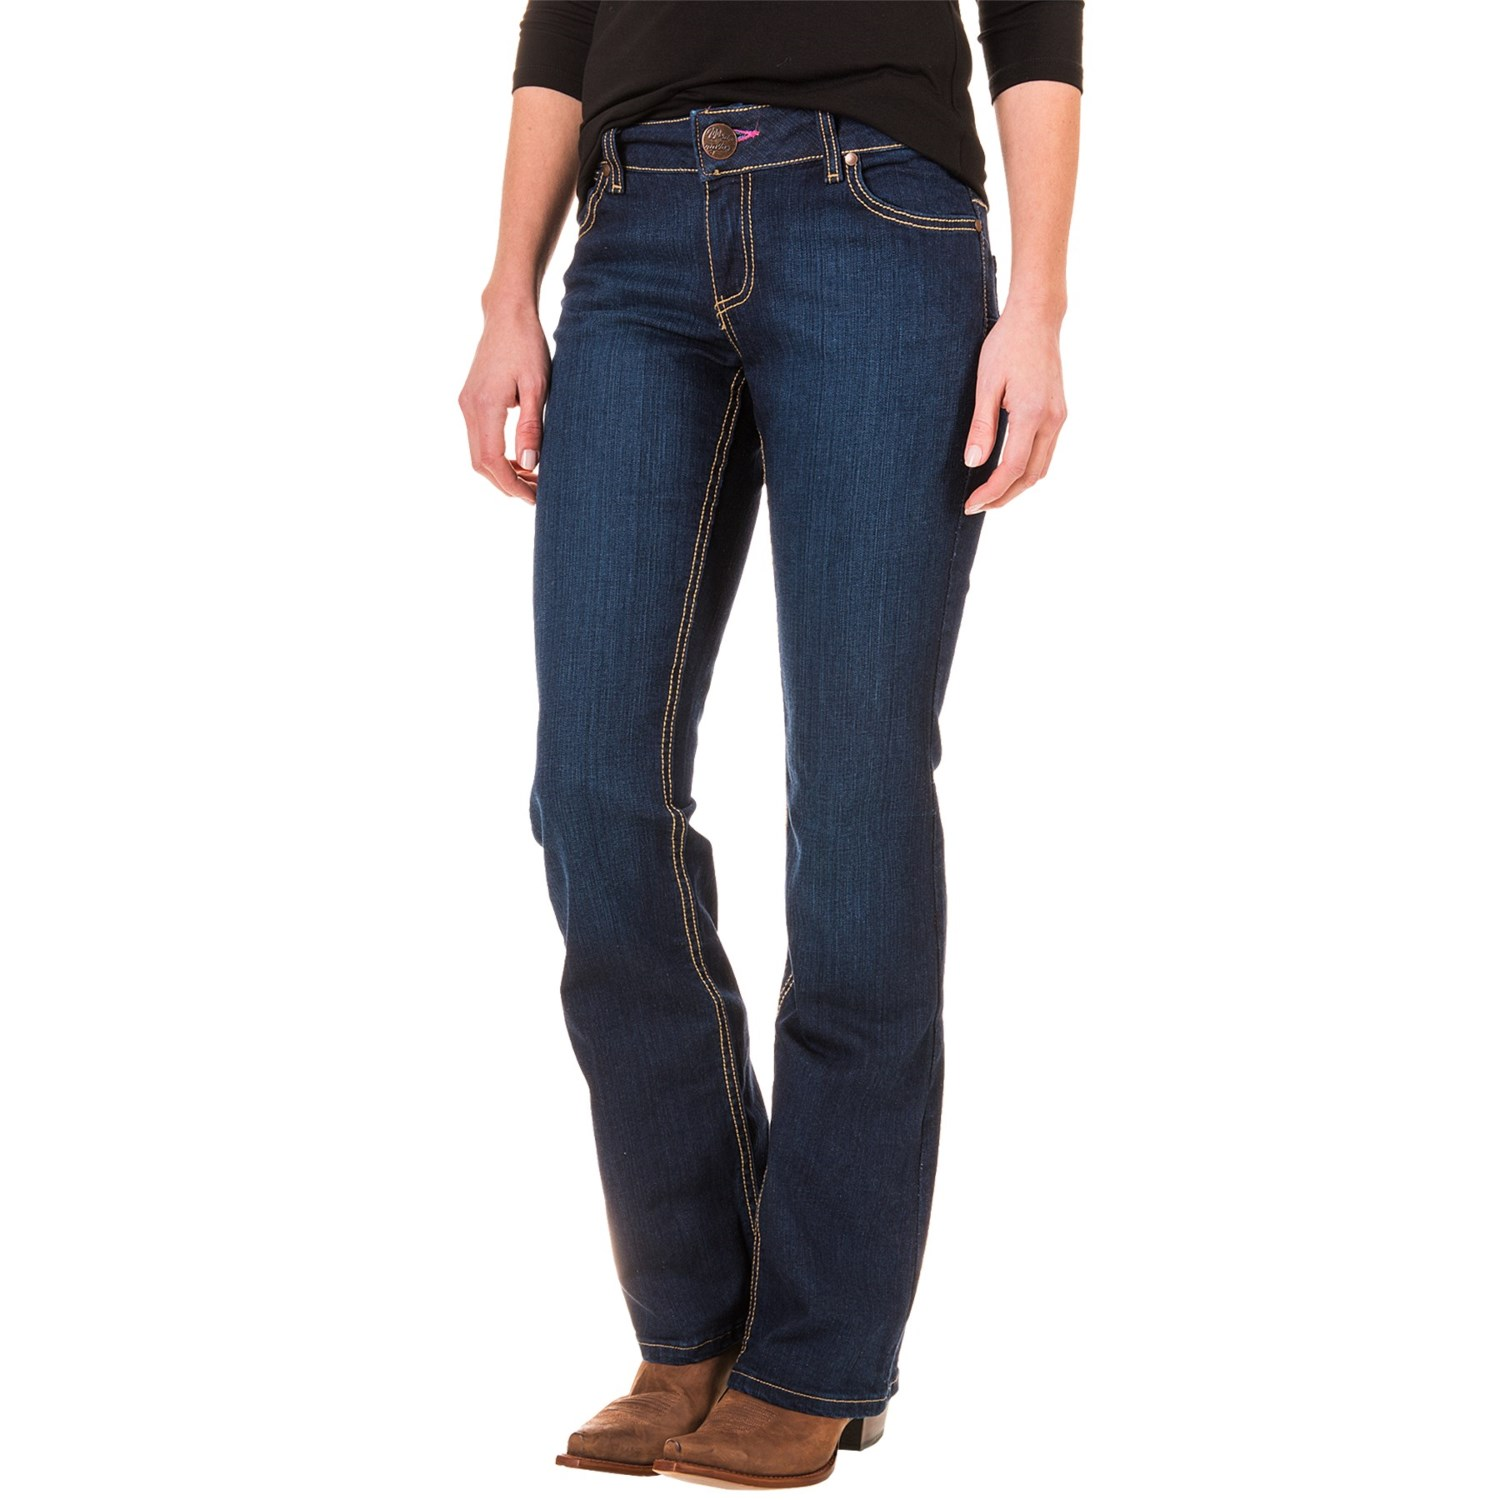 Wrangler Mae Booty Up Bootcut Jeans For Women 199wt